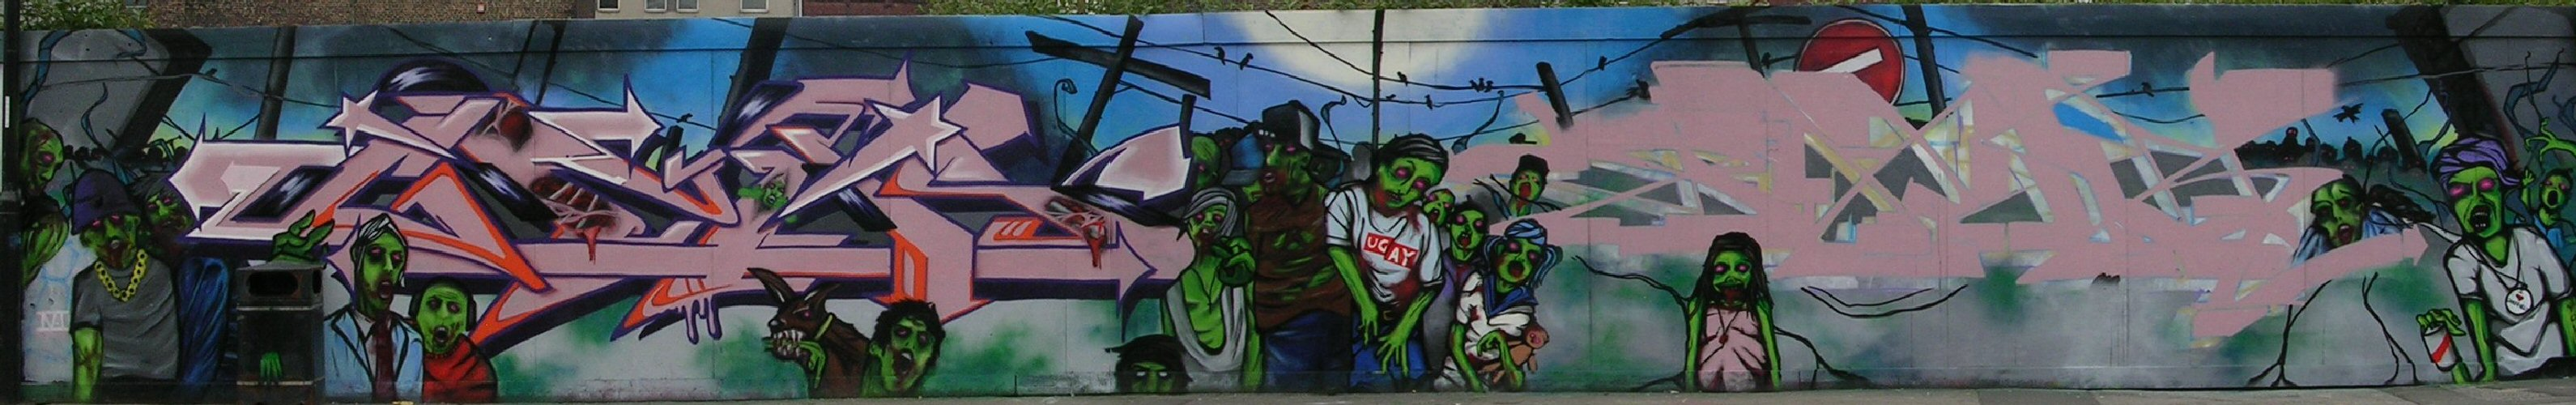 Zombies panorama by Gzos and Jaer - 10 June 2013